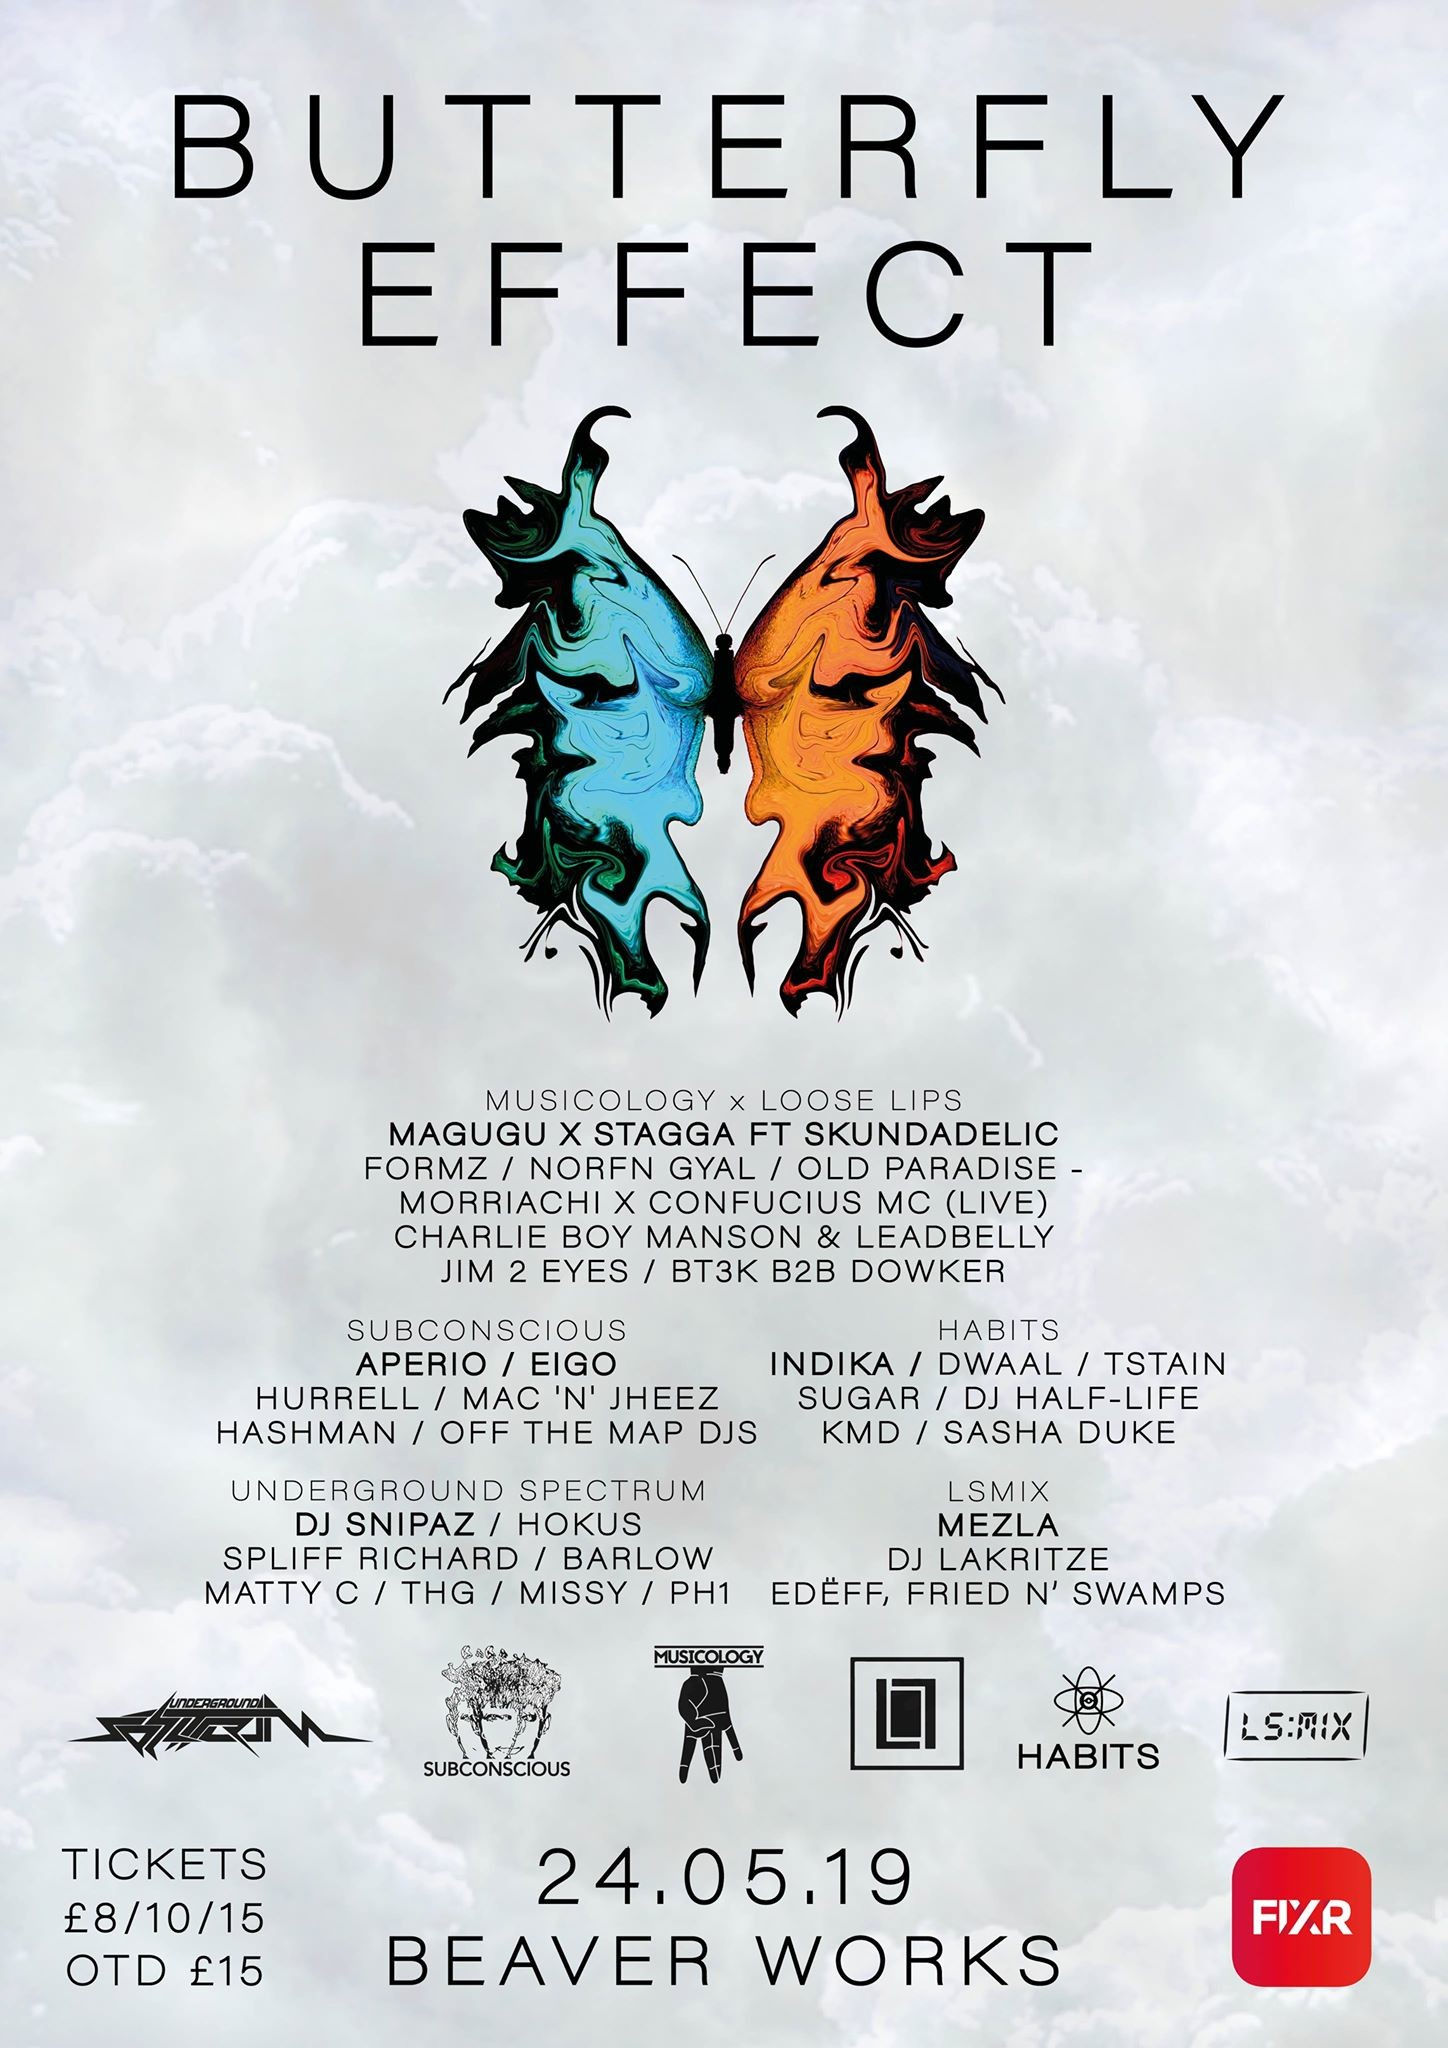 Butterfly Effect - Beaverworks - 24/5/19